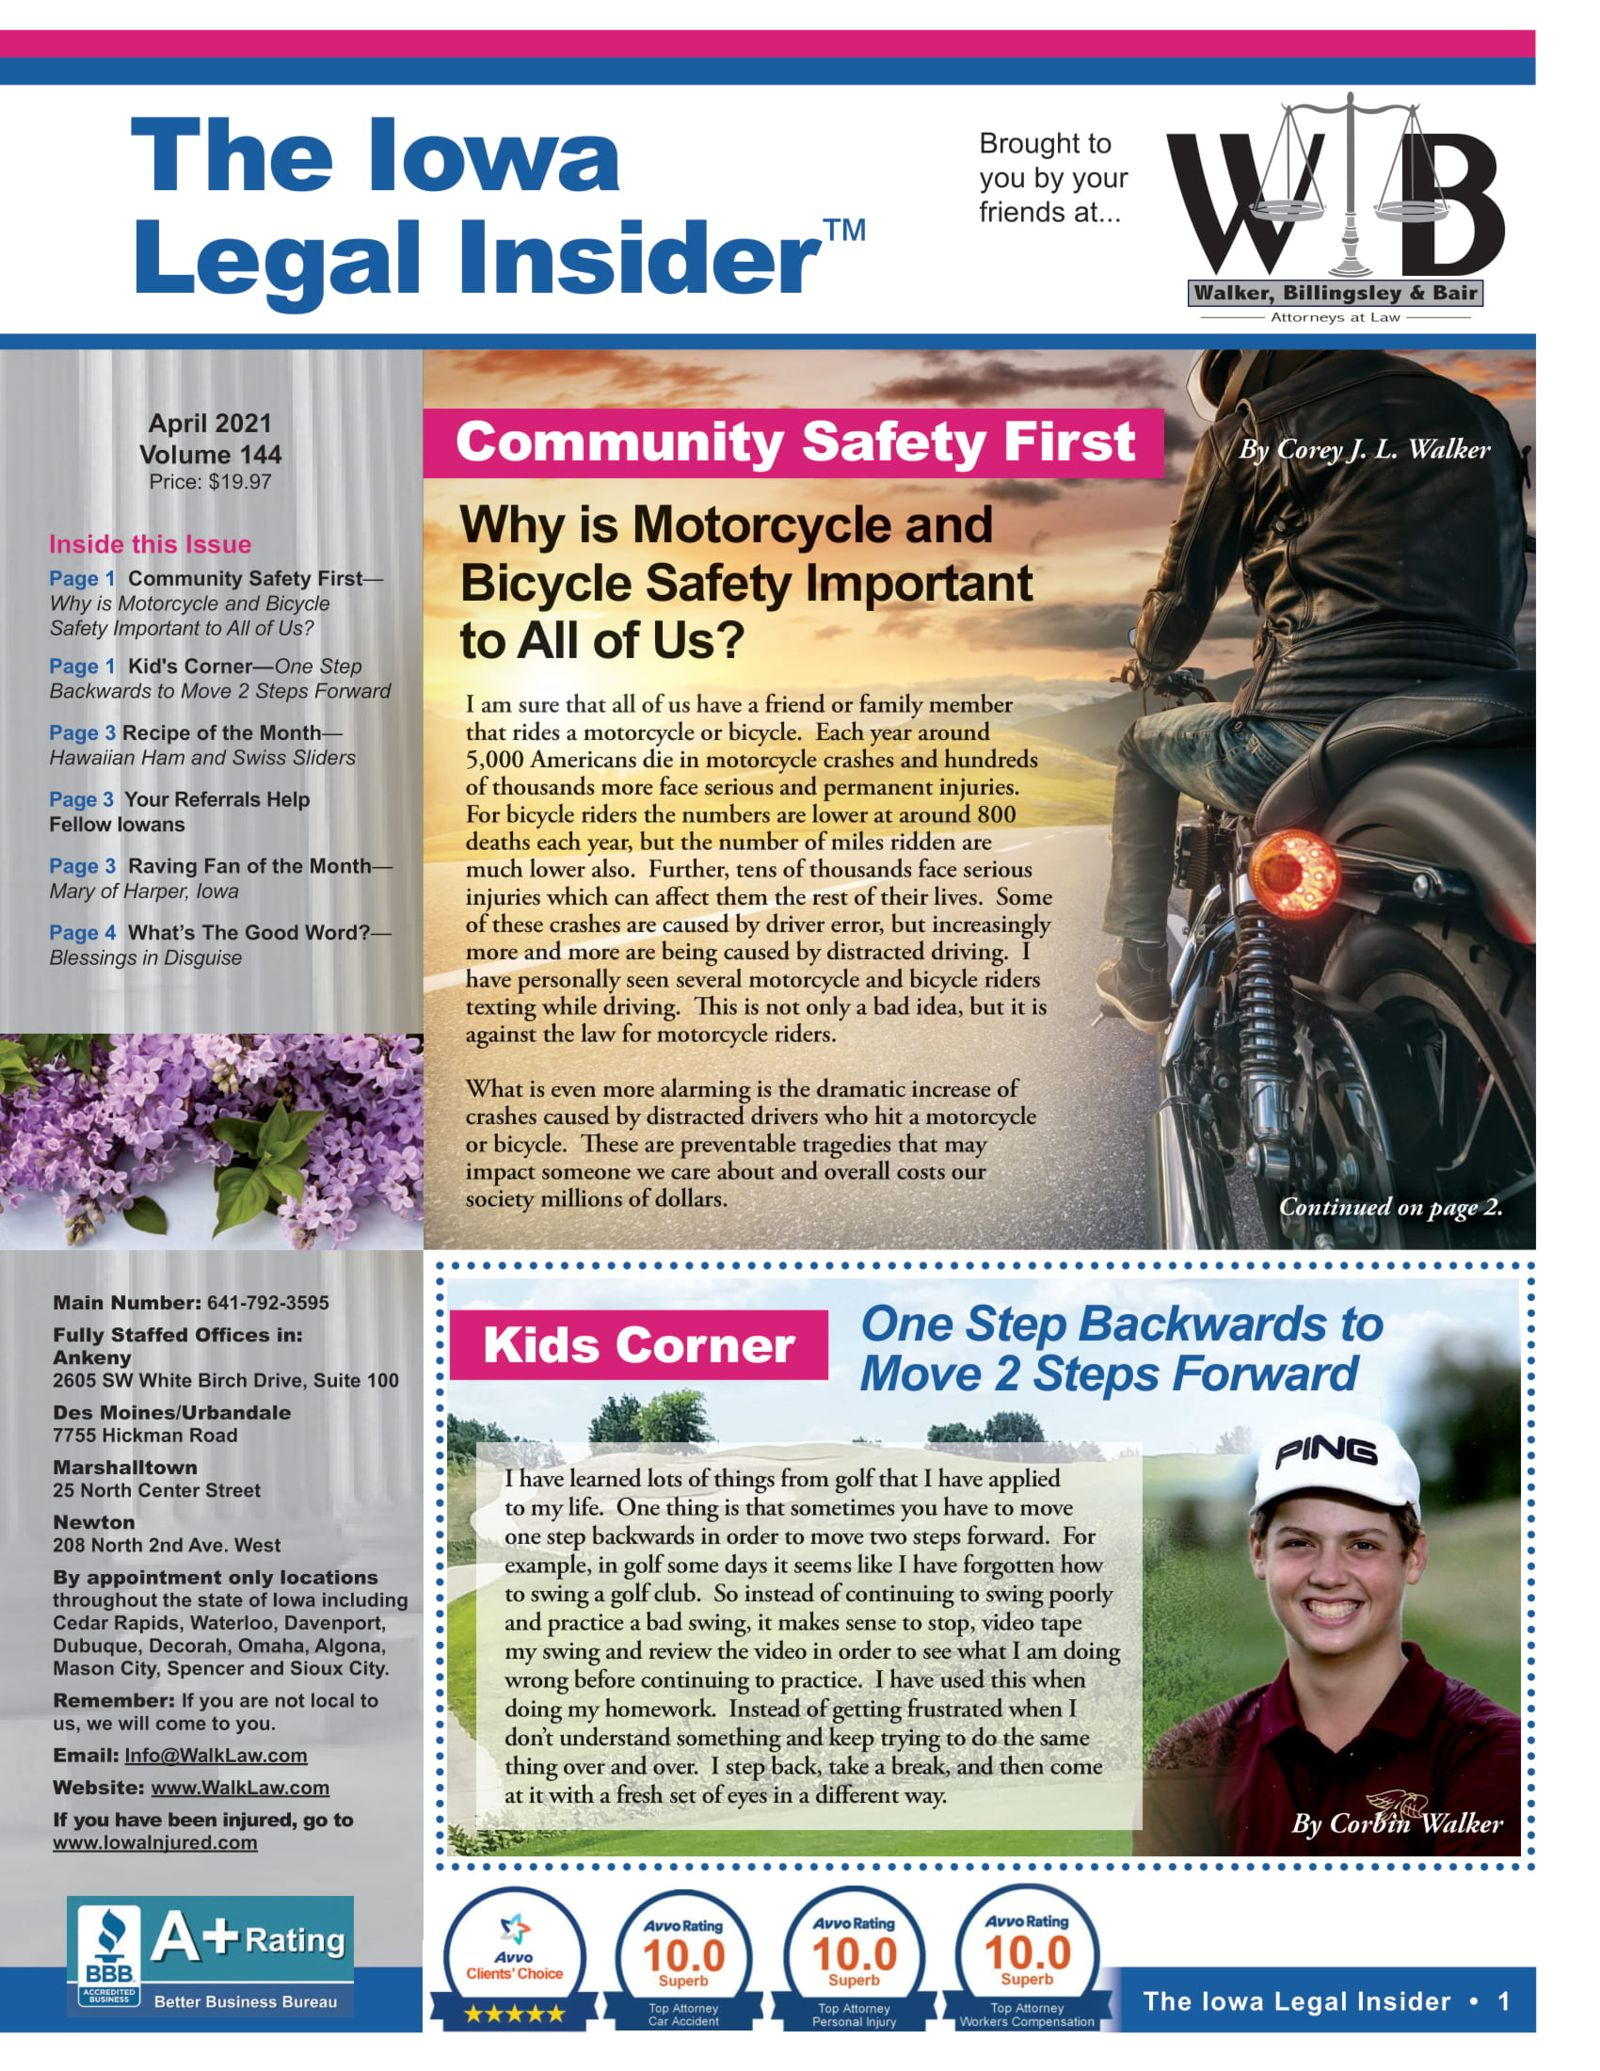 Iowa legal insider motorcycle safety importance